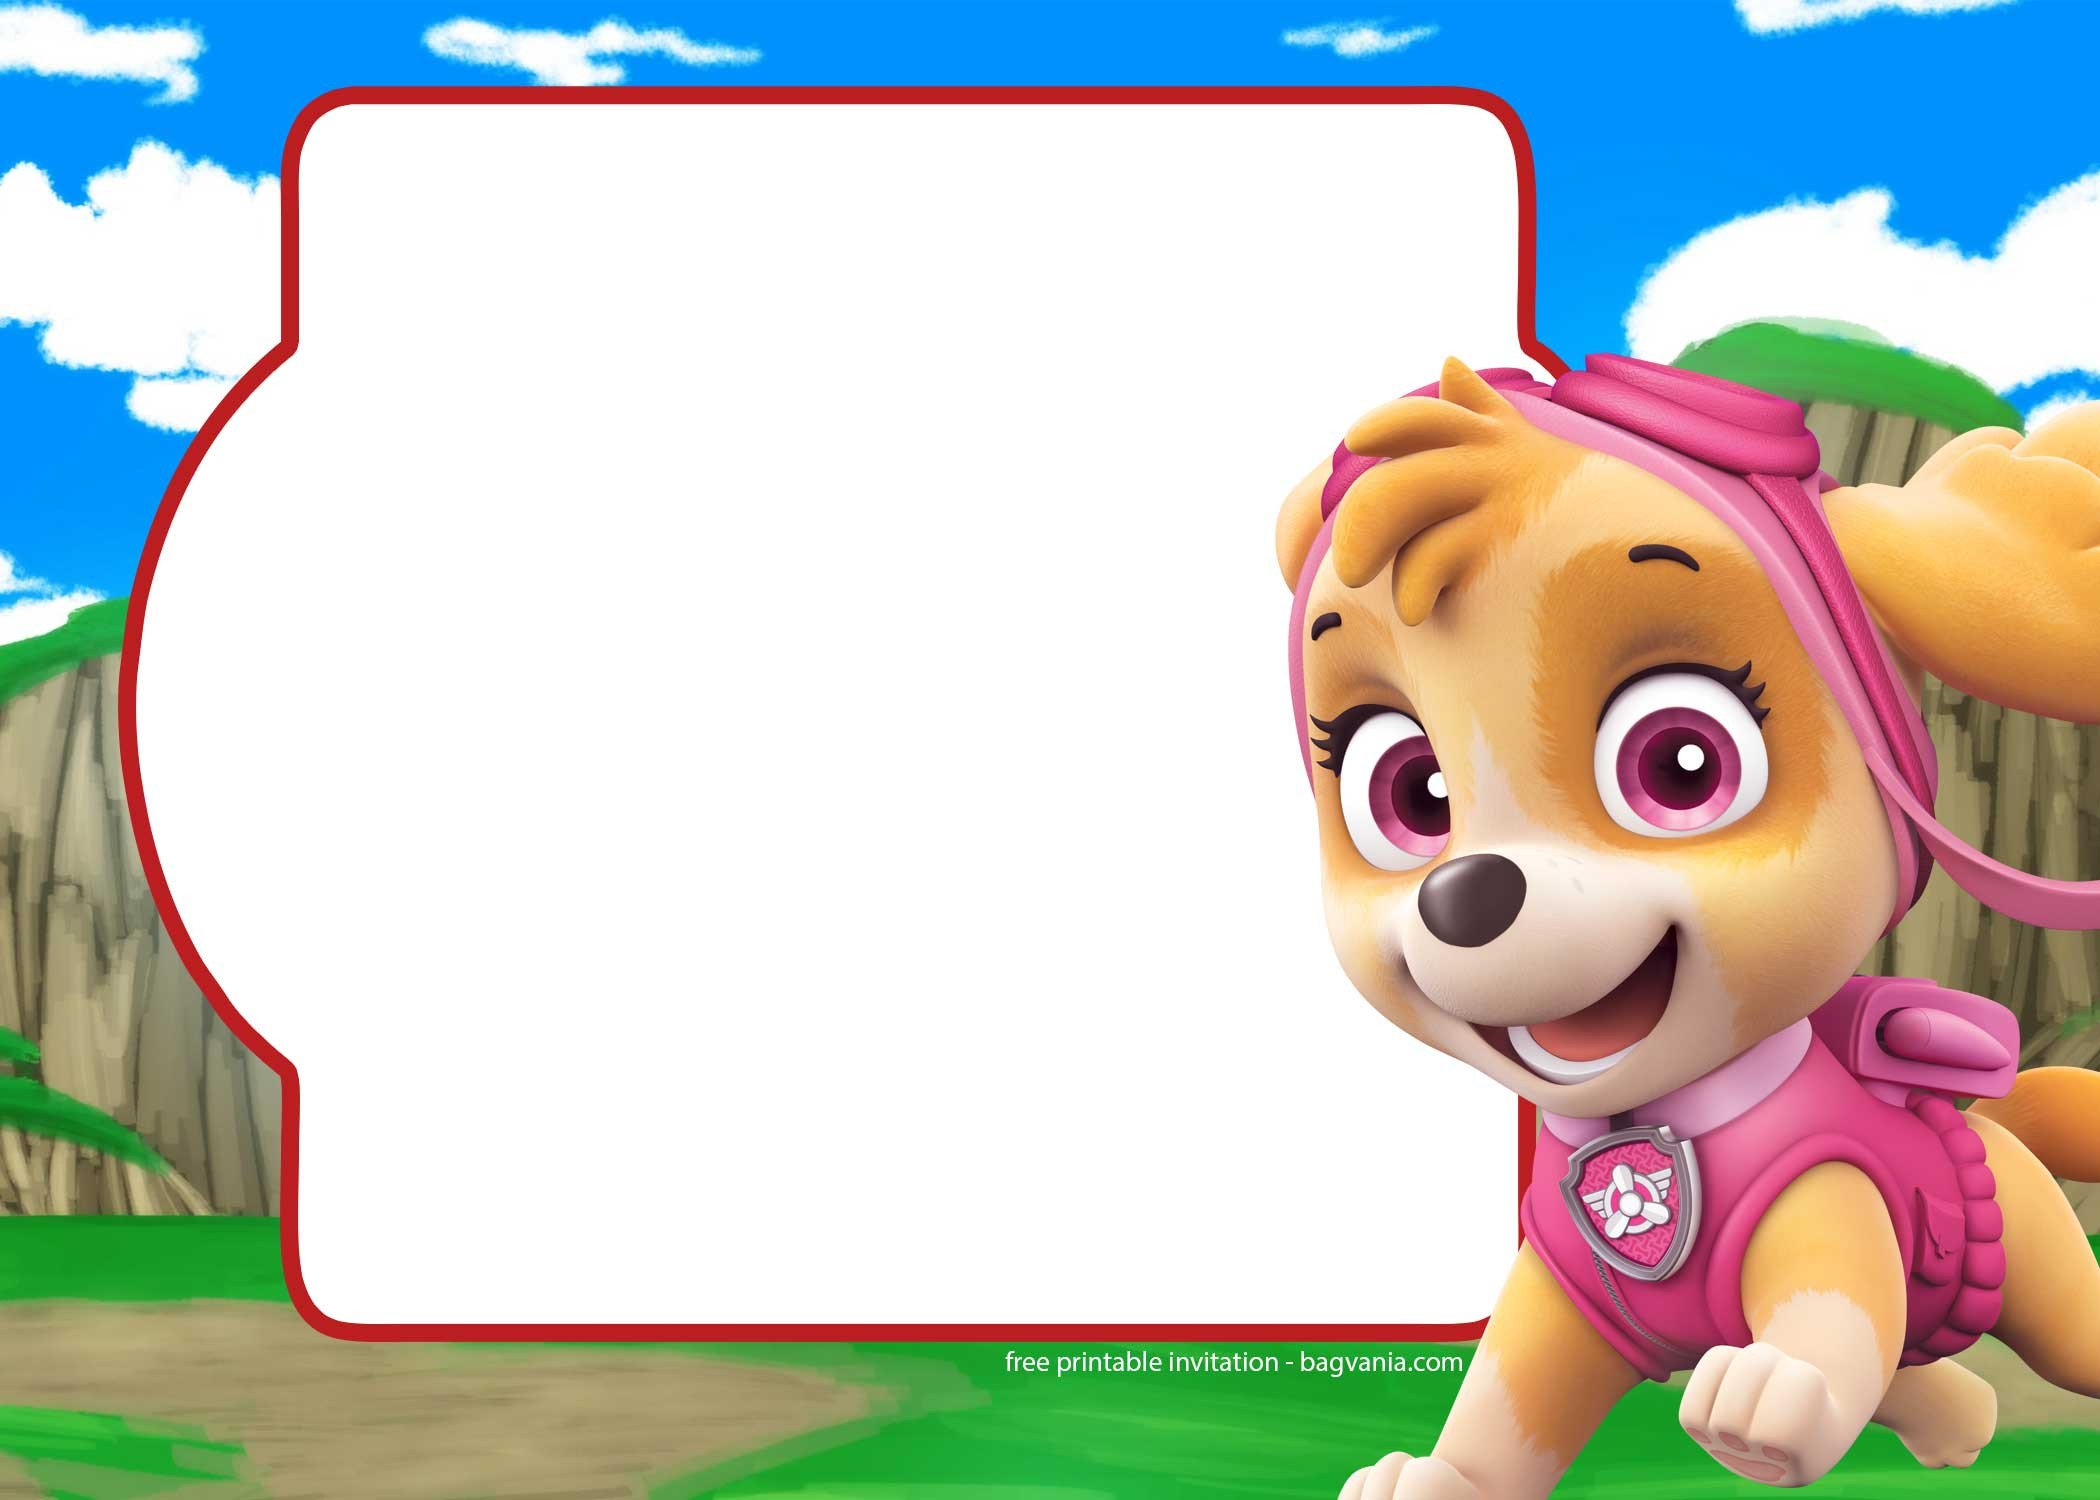 Paw Patrol Invitation Templates Free Paw Patrol Invitation Template – Plete Collection